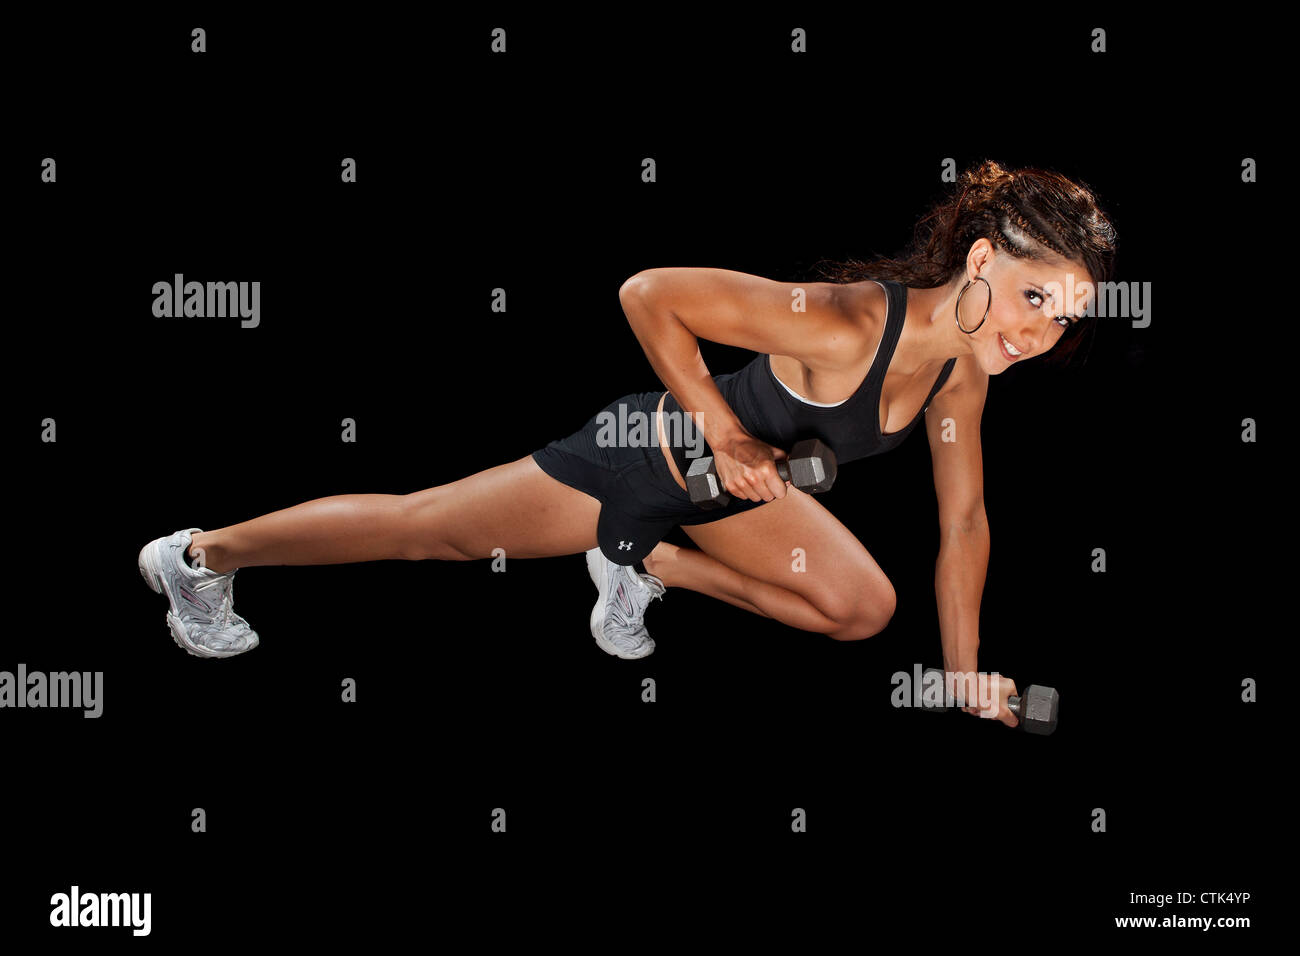 exercising fitness dancer doing press up exercise with weights sports model against black background studio lighting. - Stock Image